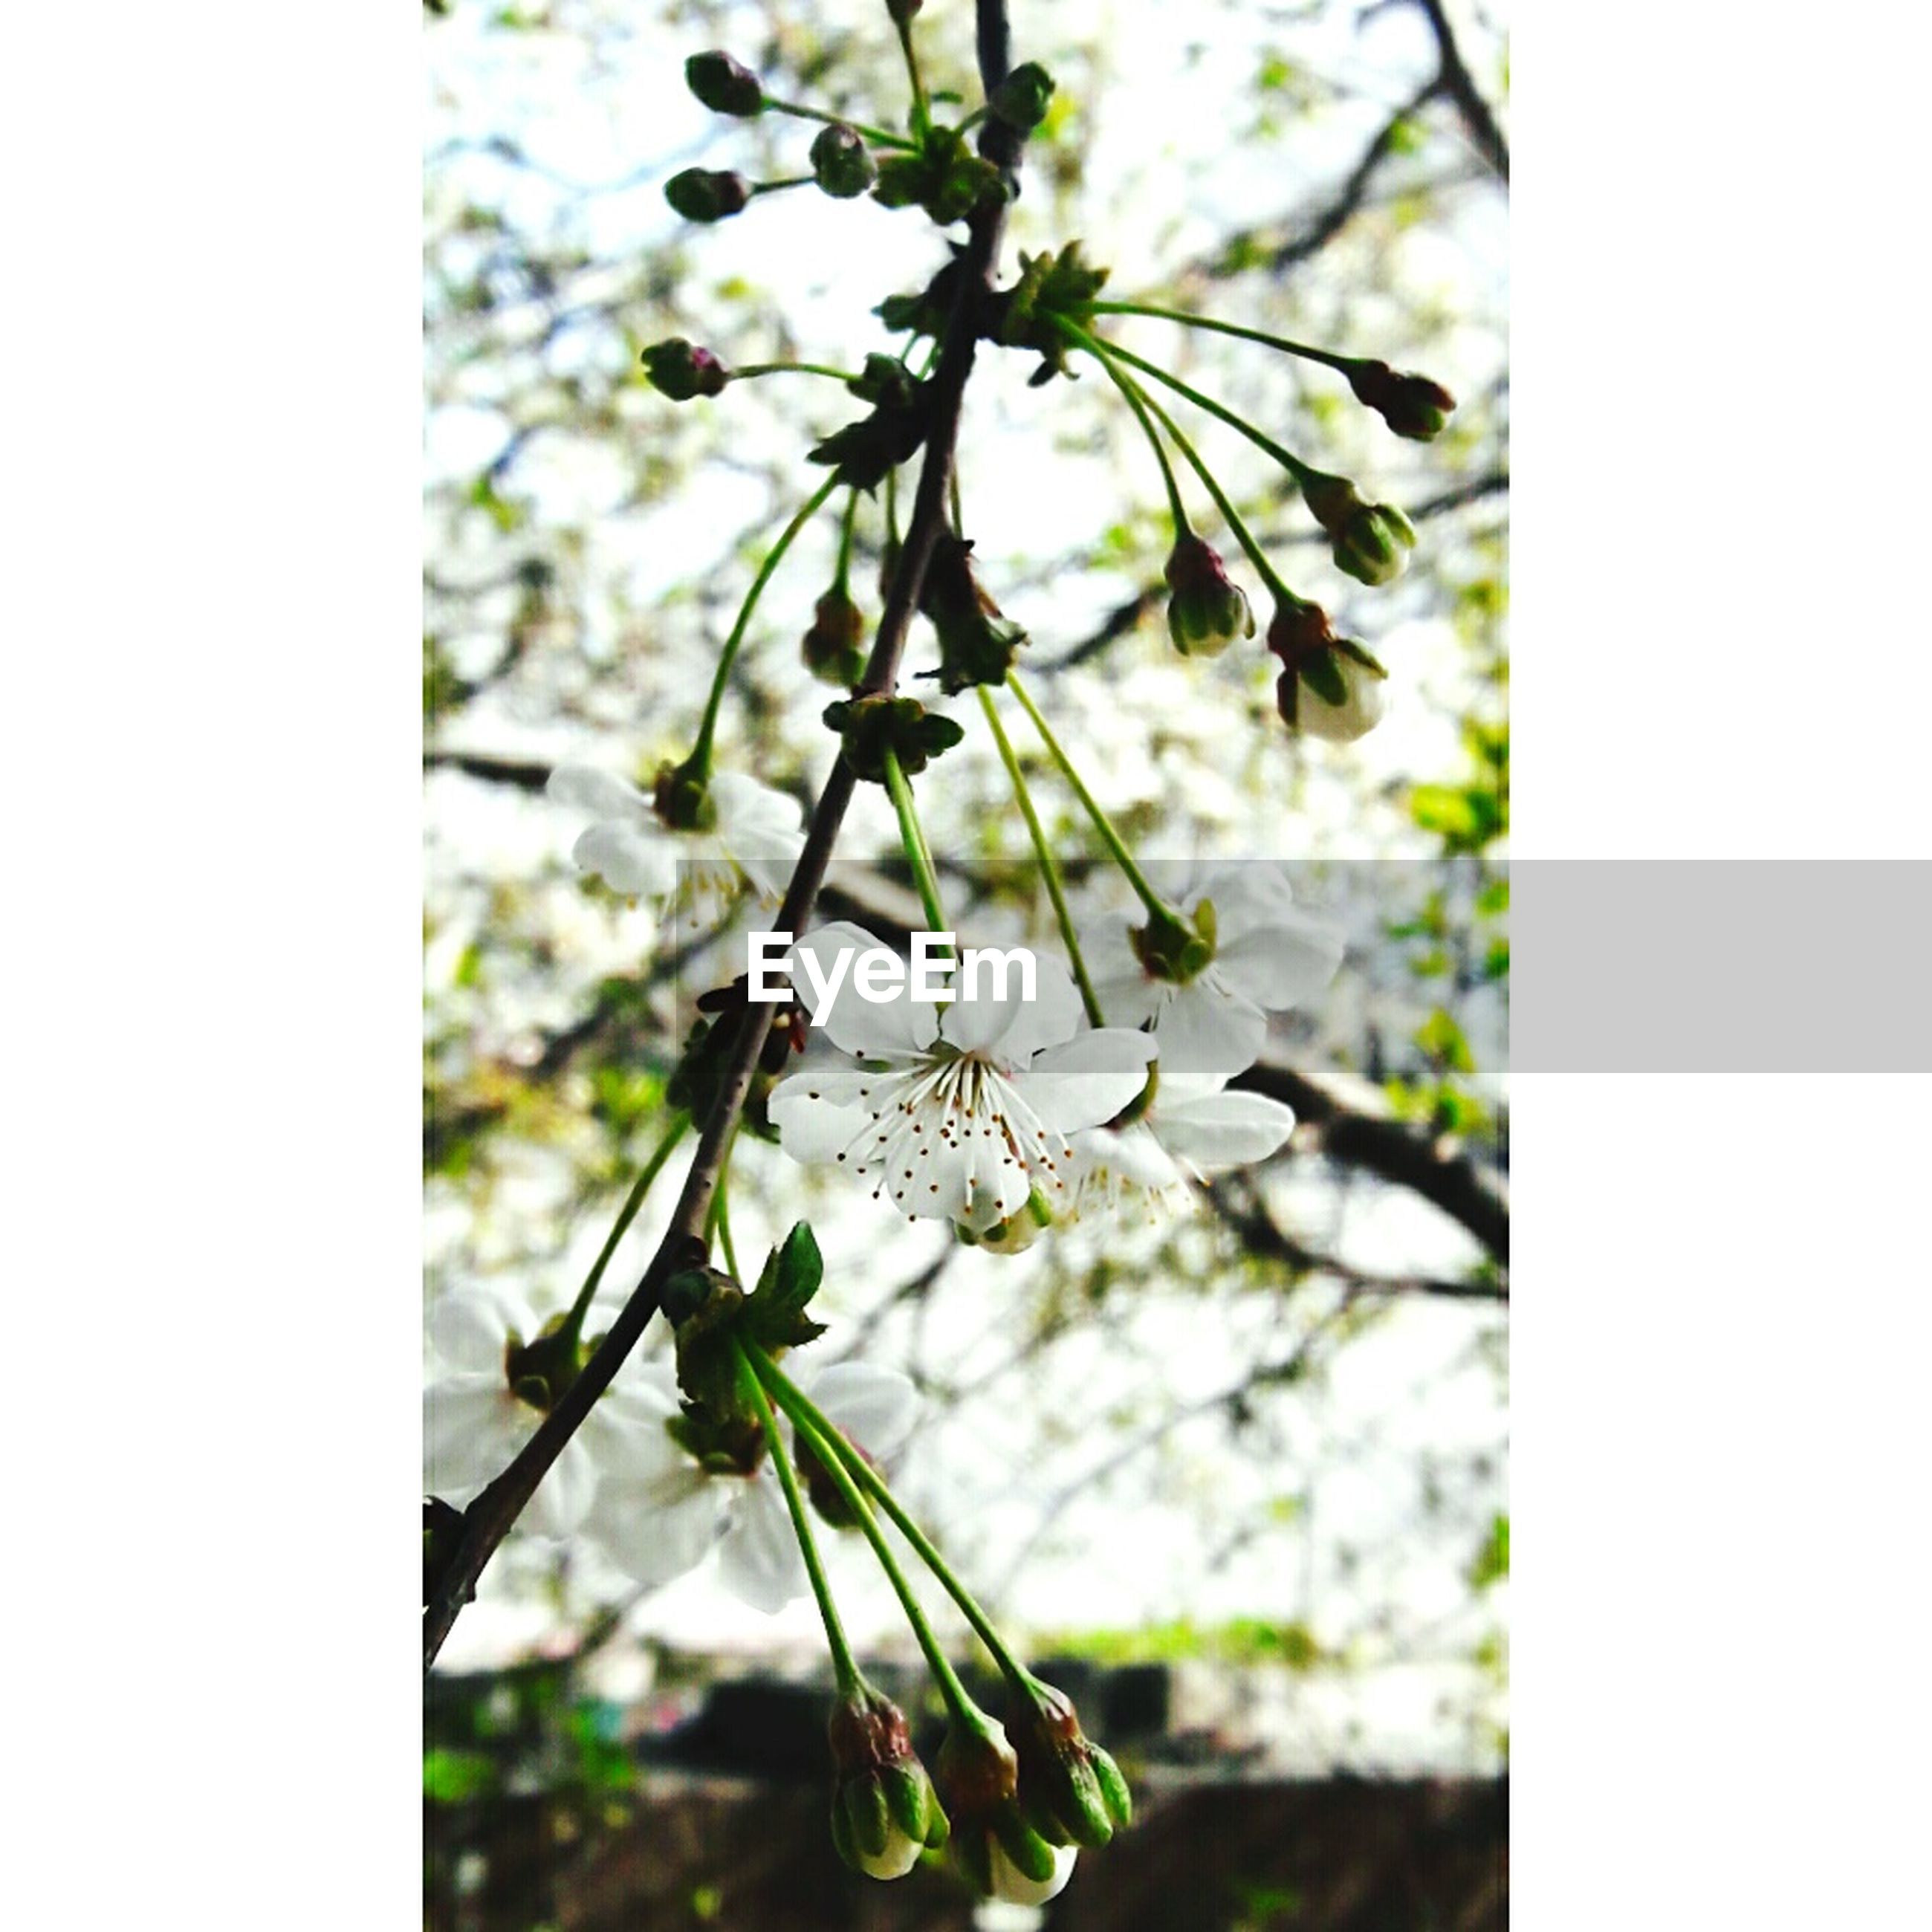 nature, close-up, growth, fragility, no people, outdoors, beauty in nature, tree, day, flower, plant, branch, freshness, vine